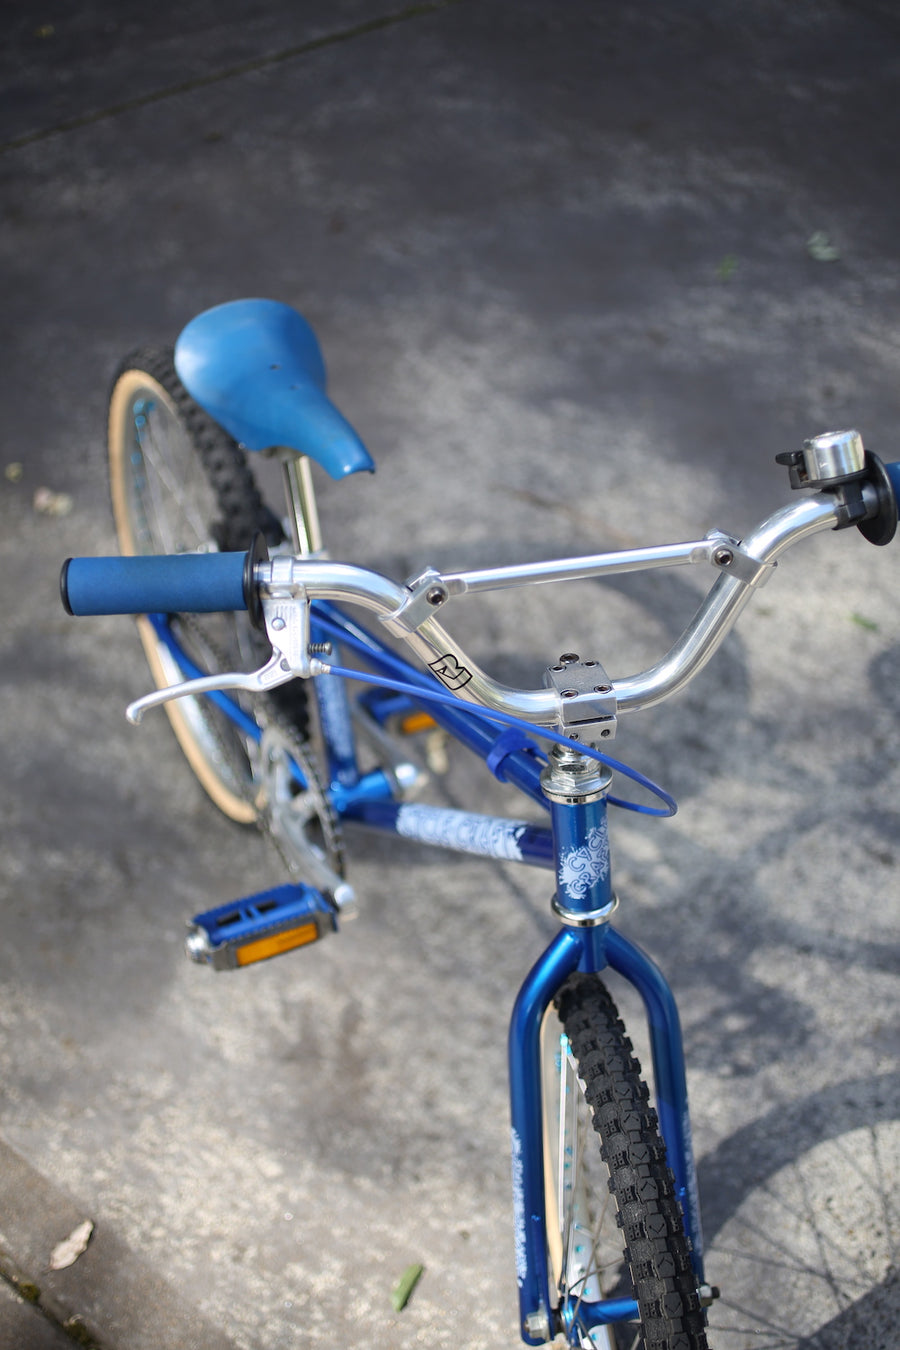 1988 Cycle Craft Junior BMX restored complete